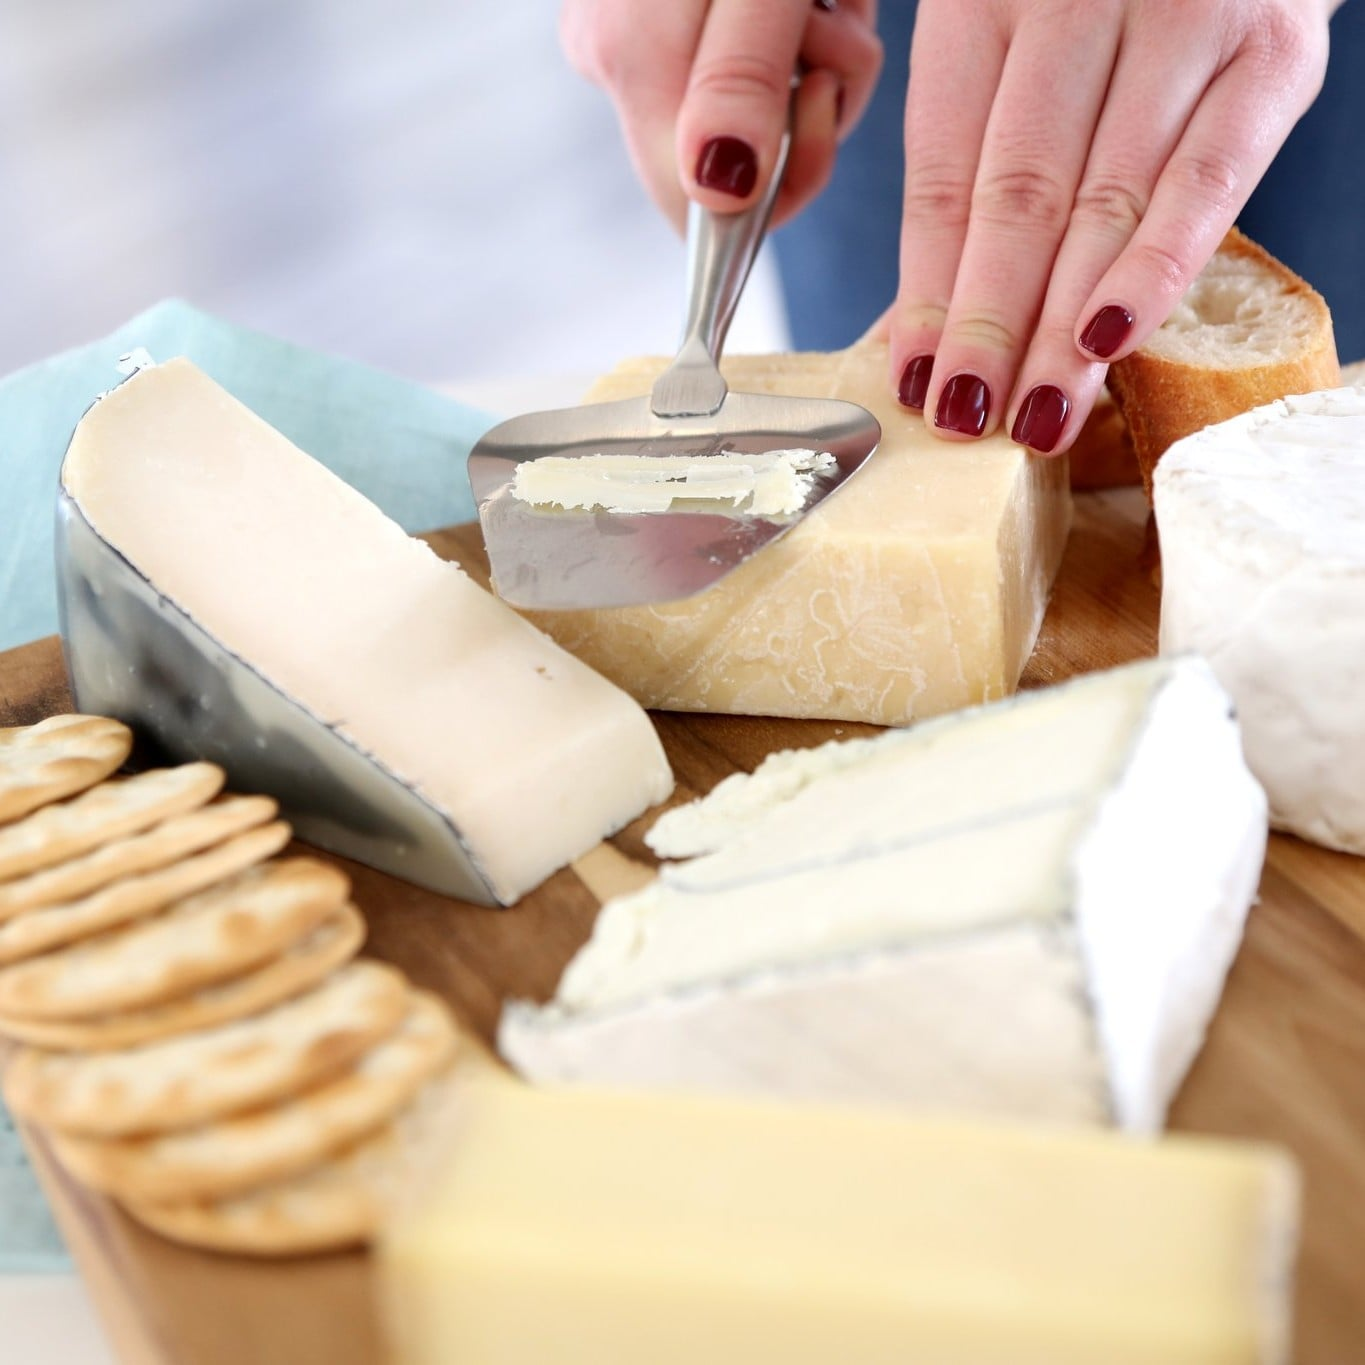 can i eat block cheese on keto diet